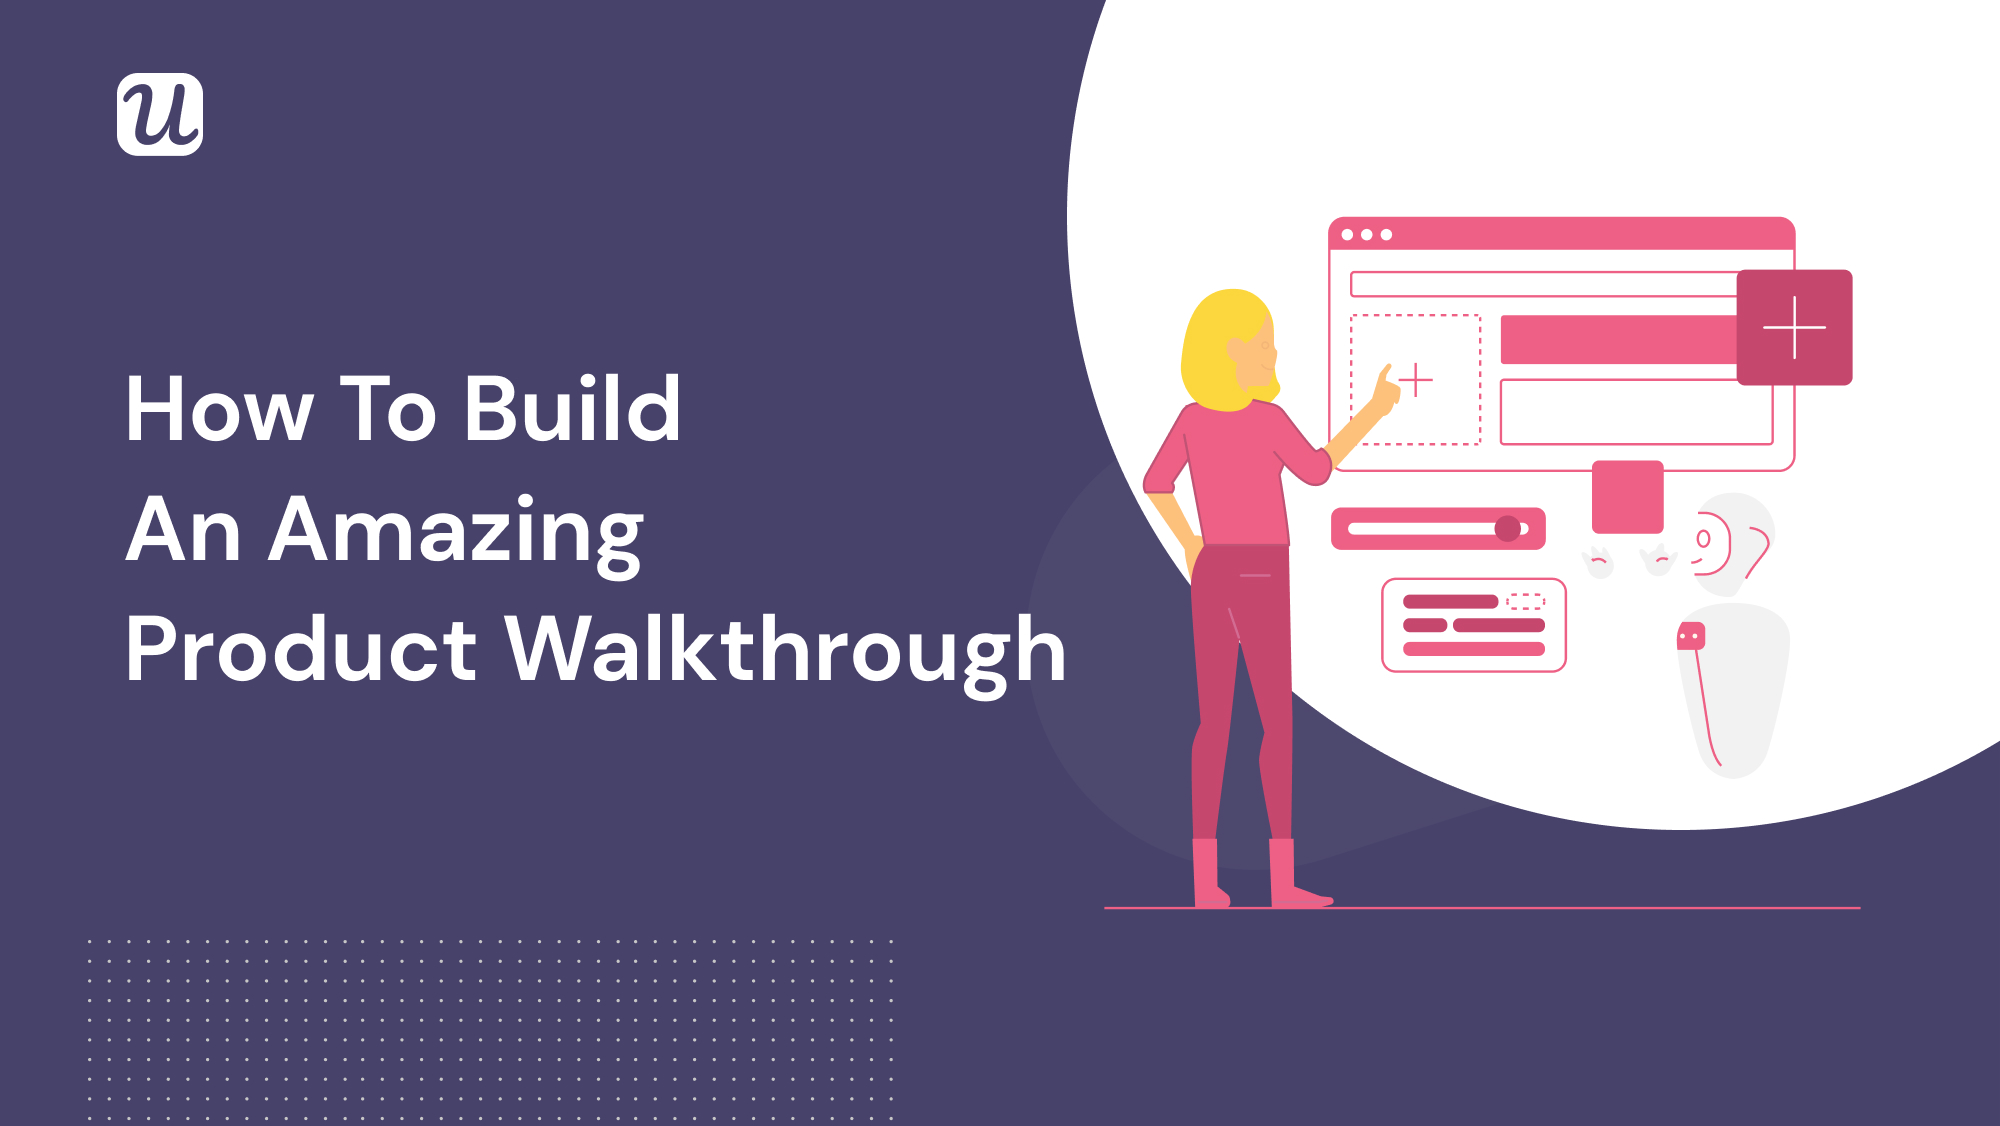 product walkthrough how to